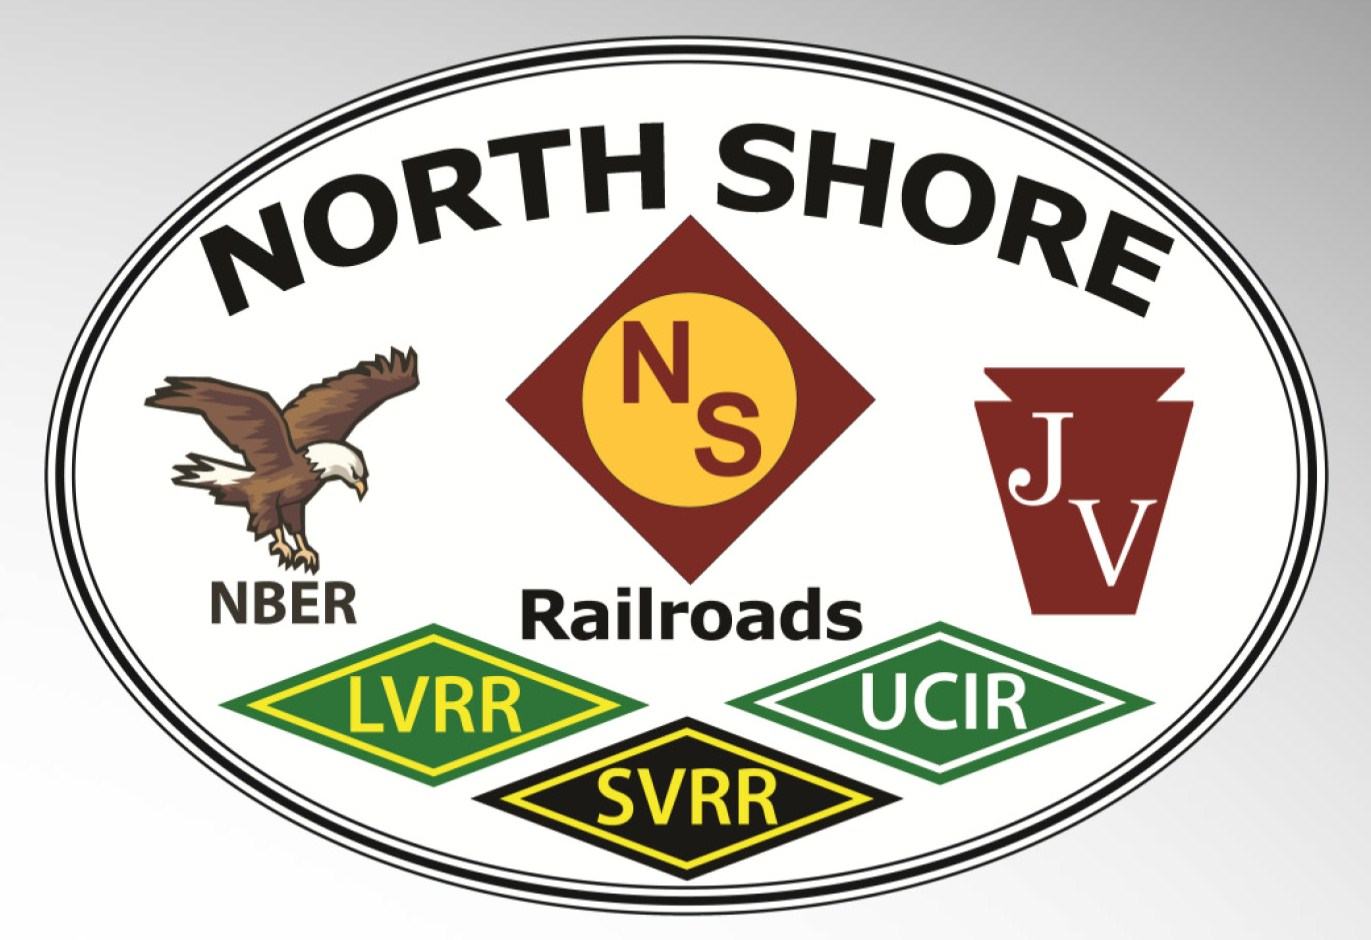 NORTH SHORE RAILROAD INVESTS $3,000 FOR REGIONAL GROWTH